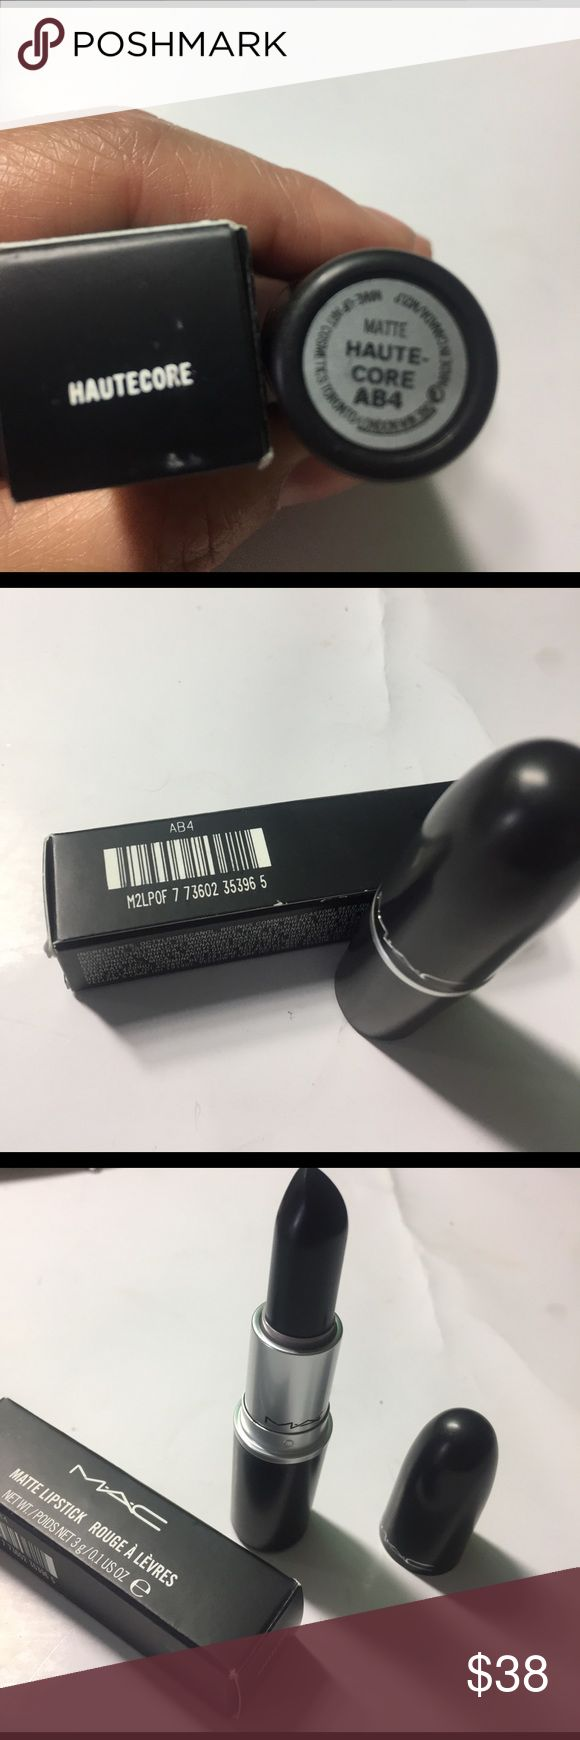 Mac LE Hautecore New in box, never used authentic hautecore lipstick from Mac. Price firm. Check my other listings will give discount if bought in multiples. MAC Cosmetics Makeup Lipstick